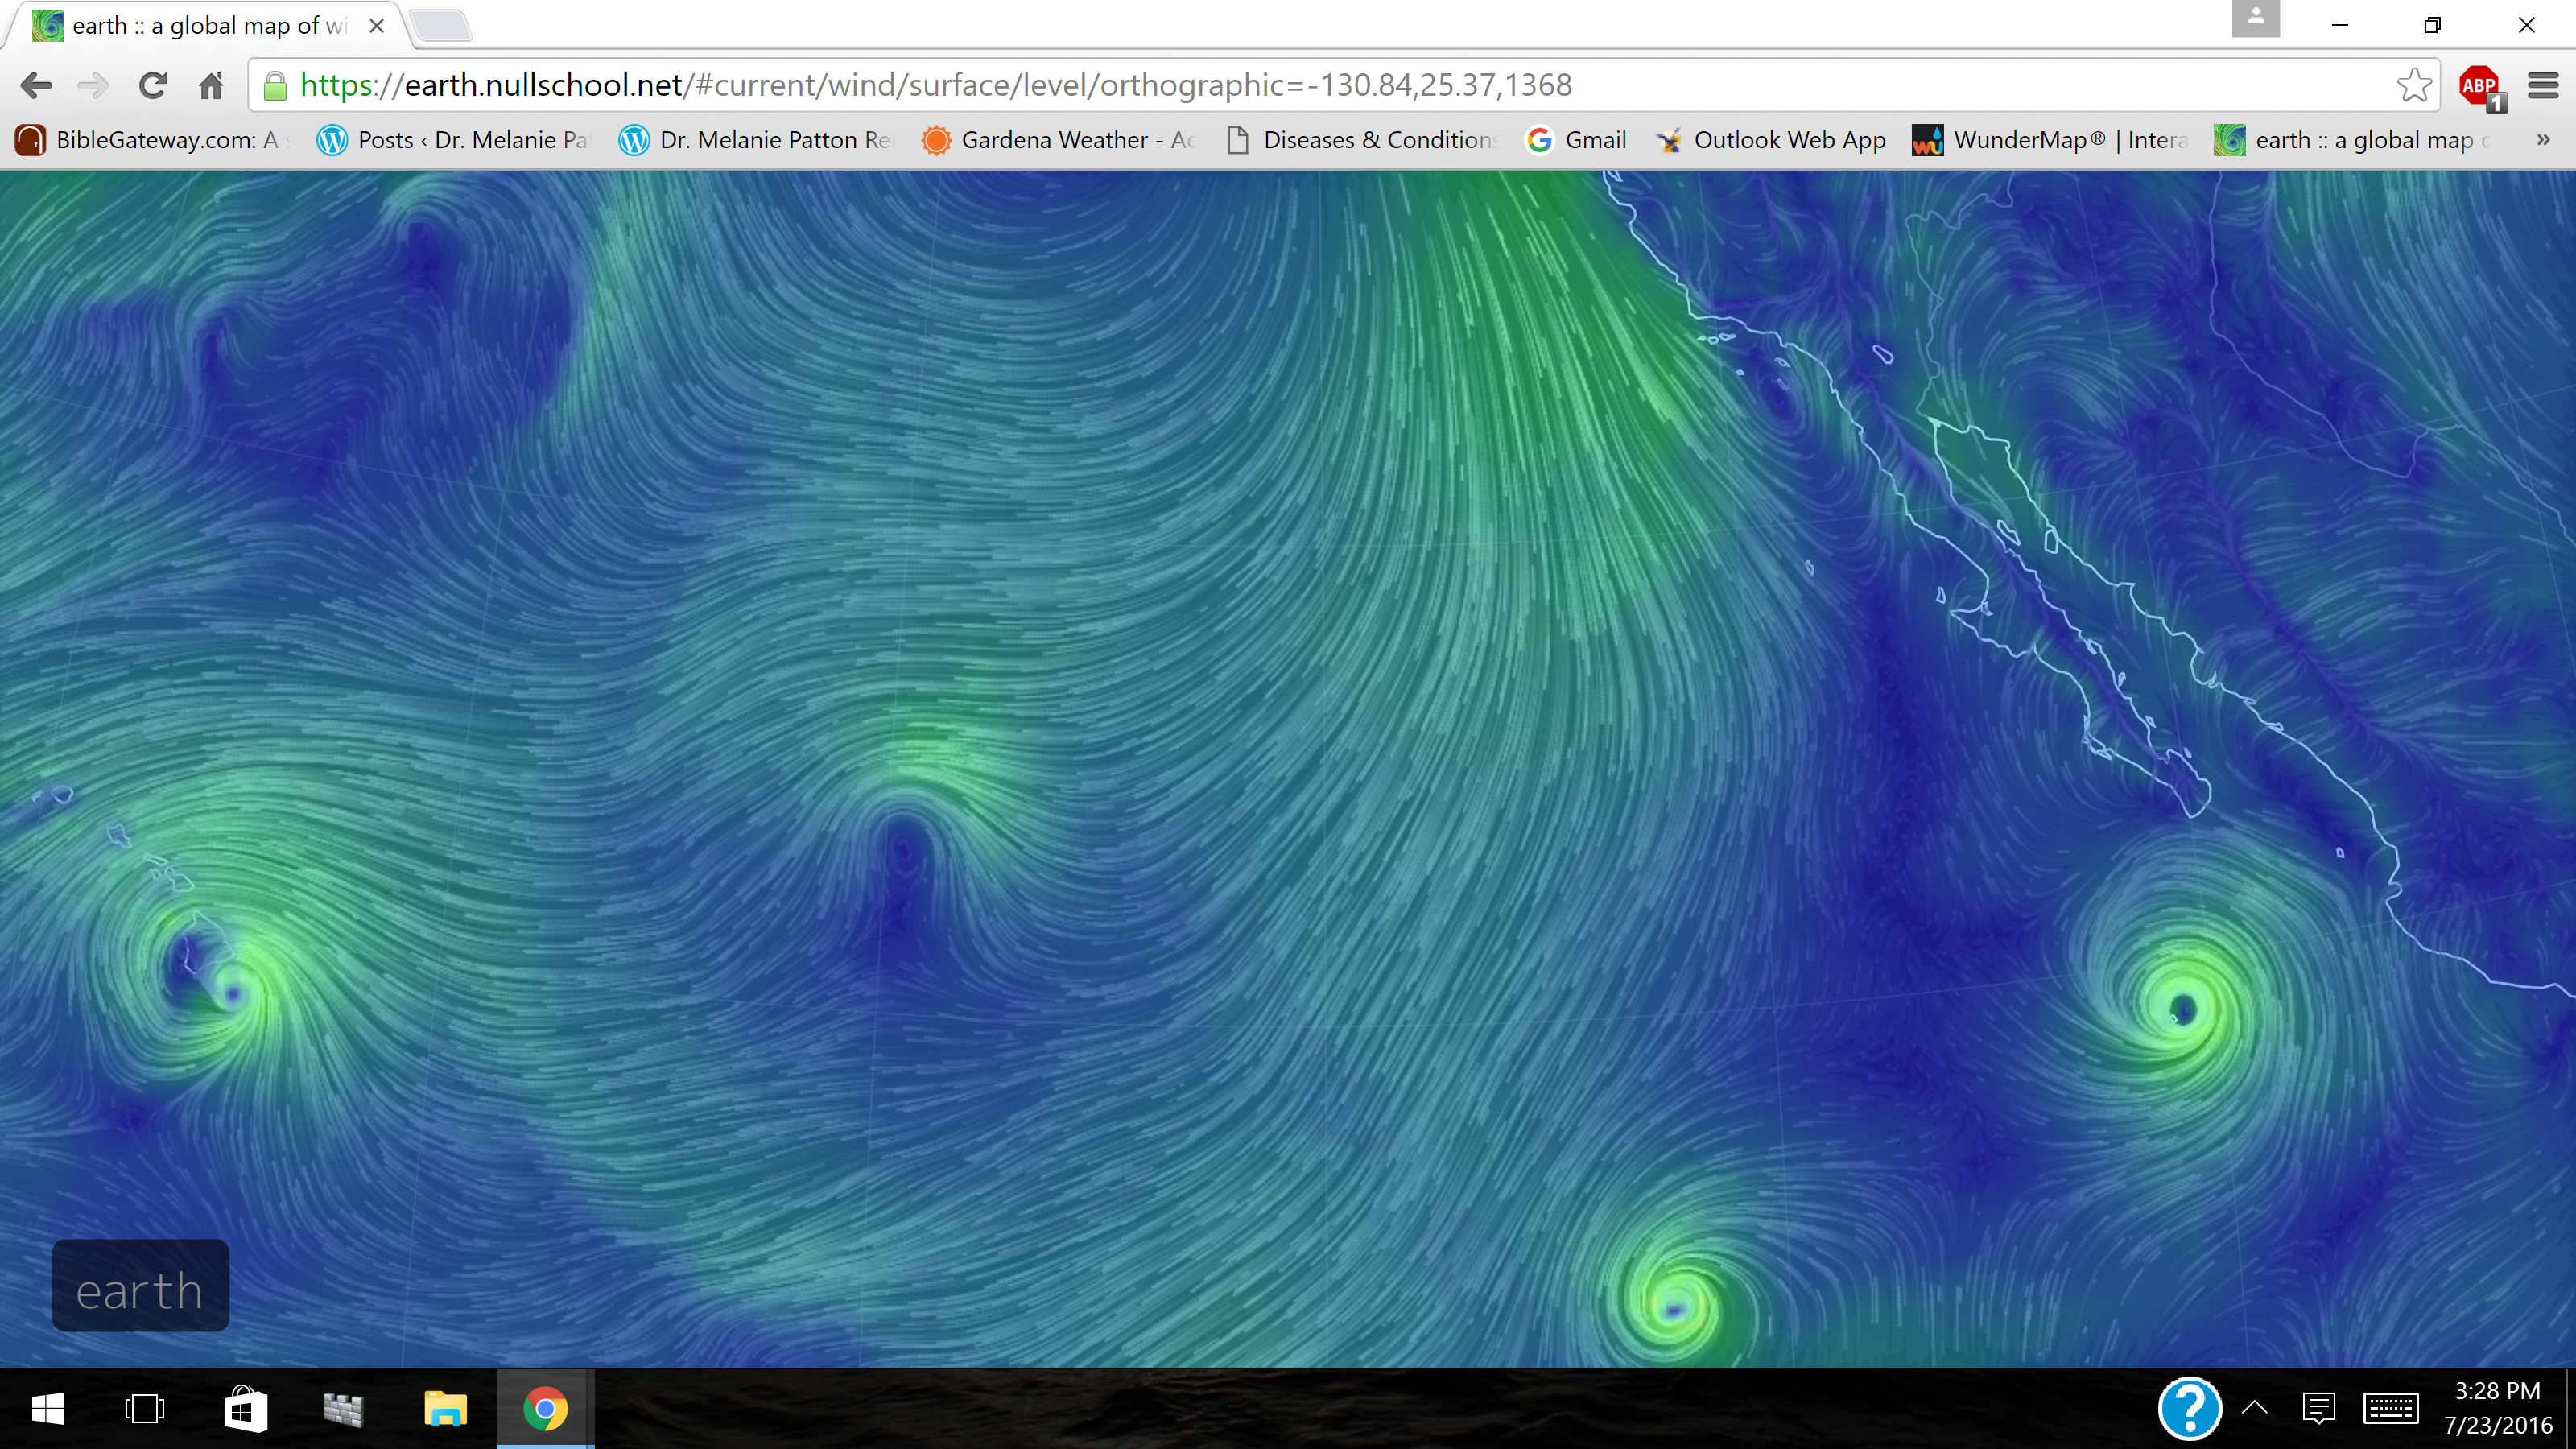 Wind Map E Pacific Tc Darby Hawaii 2 Others 7 23 16 Dr Melanie